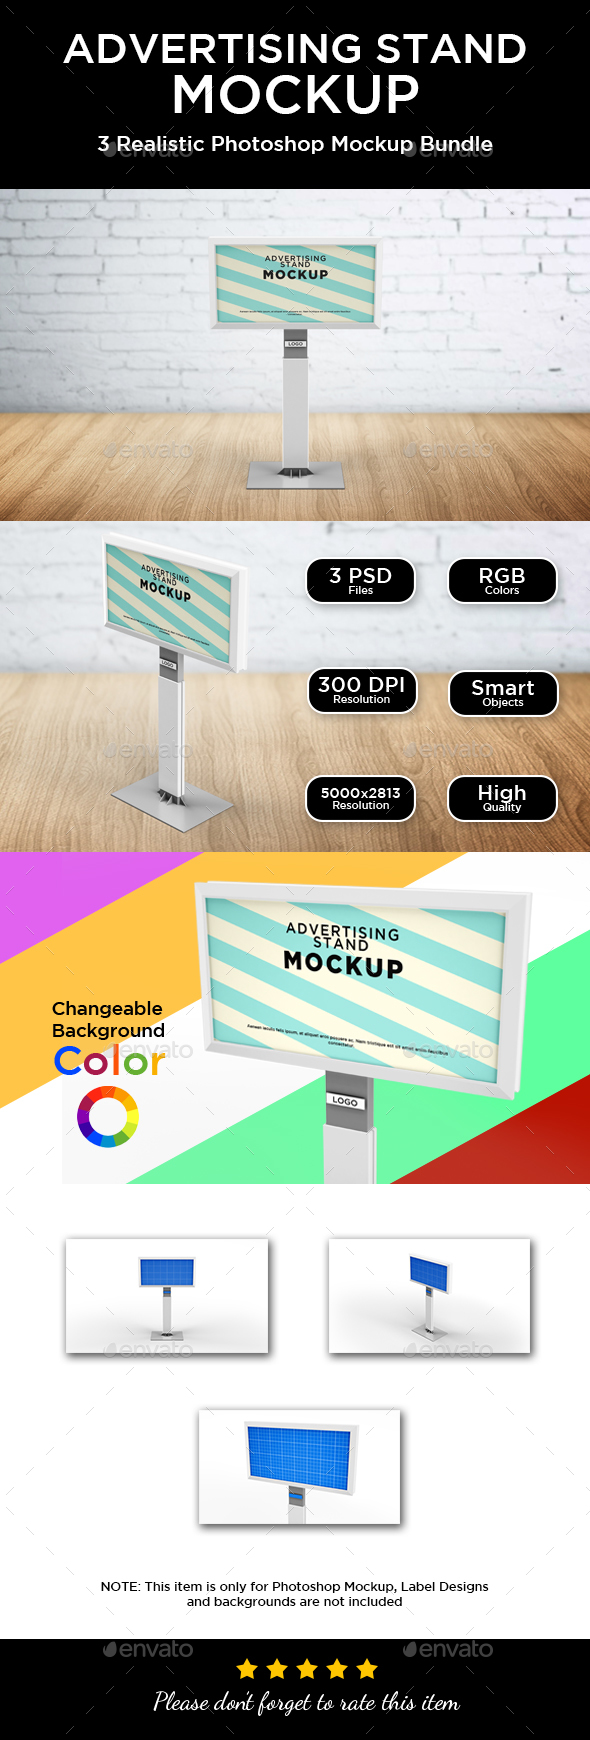 Banner and Advertising Stand Mockup - Displays Product Mock-Ups